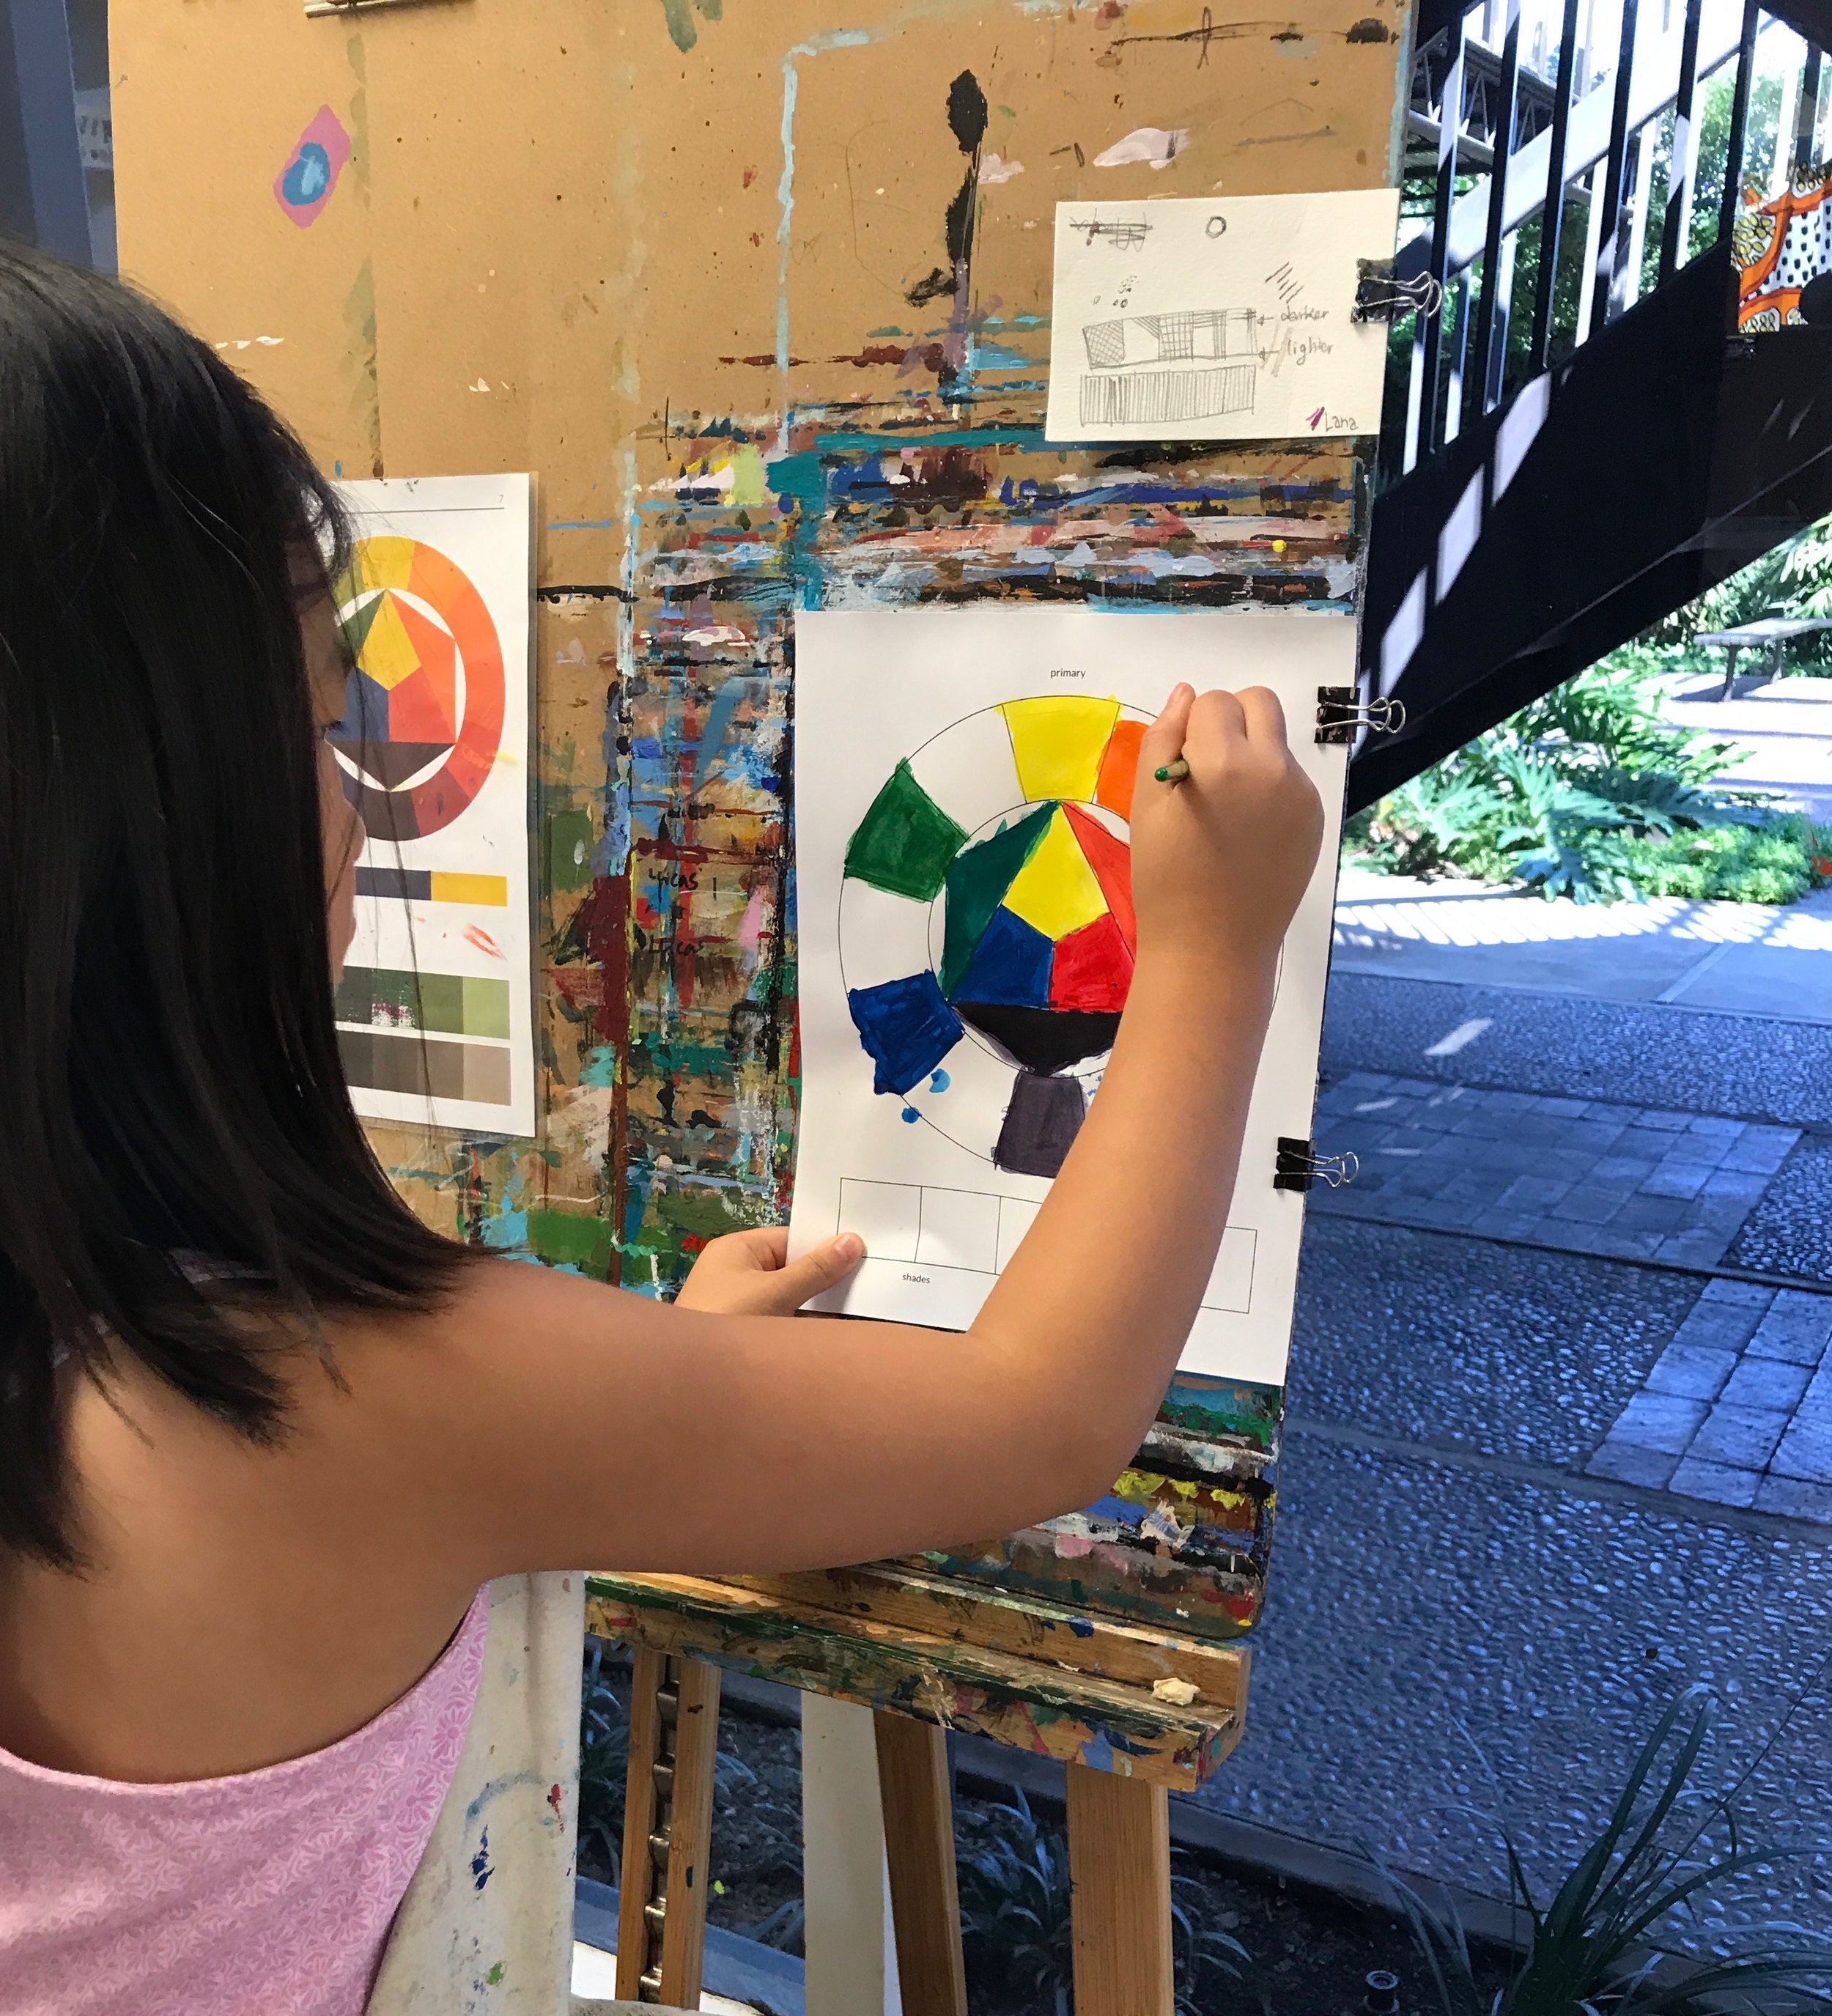 STUDY: COLOR (Color Wheel) - GOAL: Learn what primary colors are, how they can be mixed to make secondary and tertiary colors, and how black and white can be added to create tints, shades and tones.